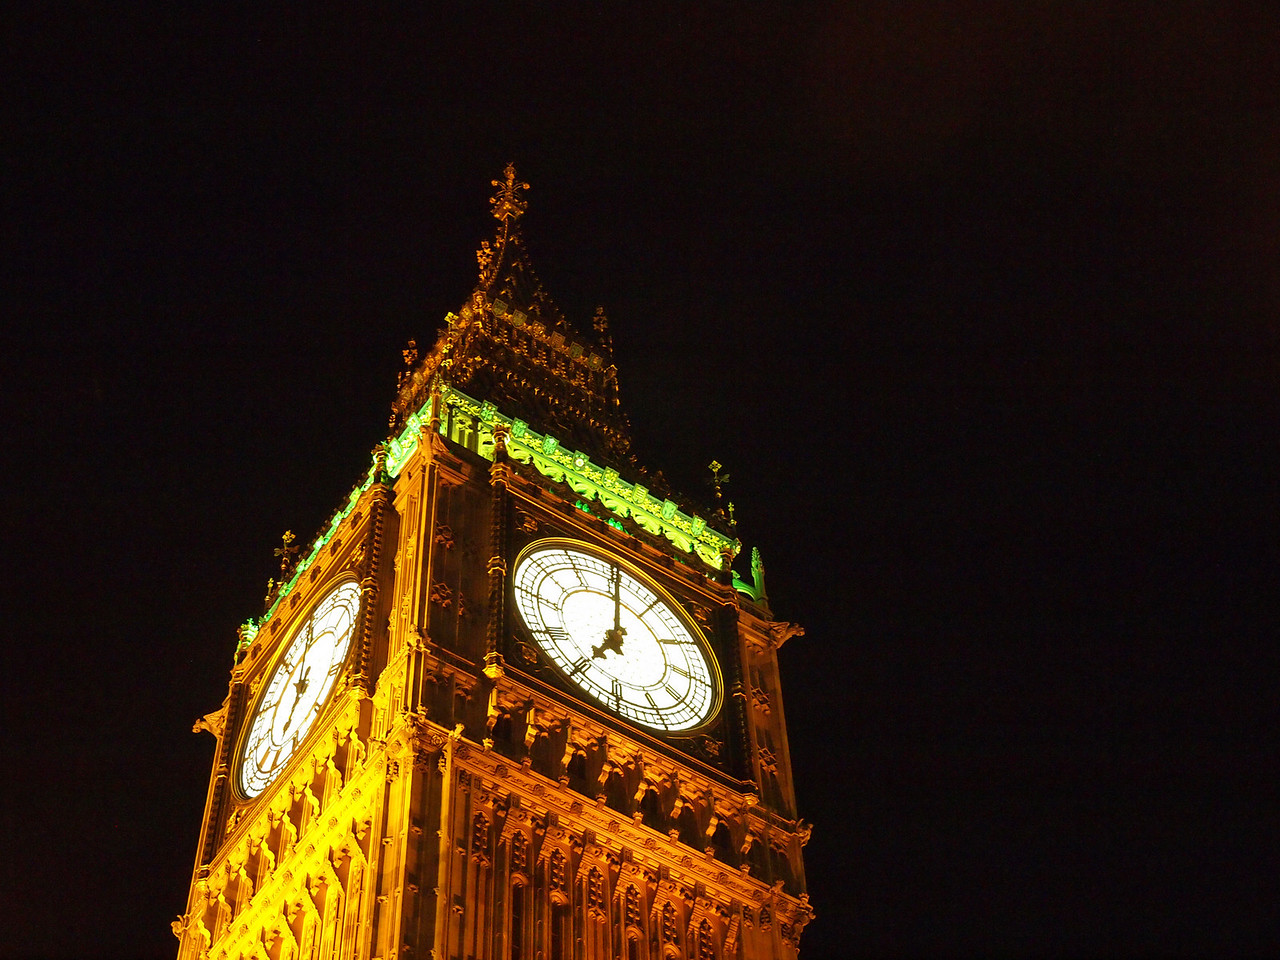 Big Ben at night.